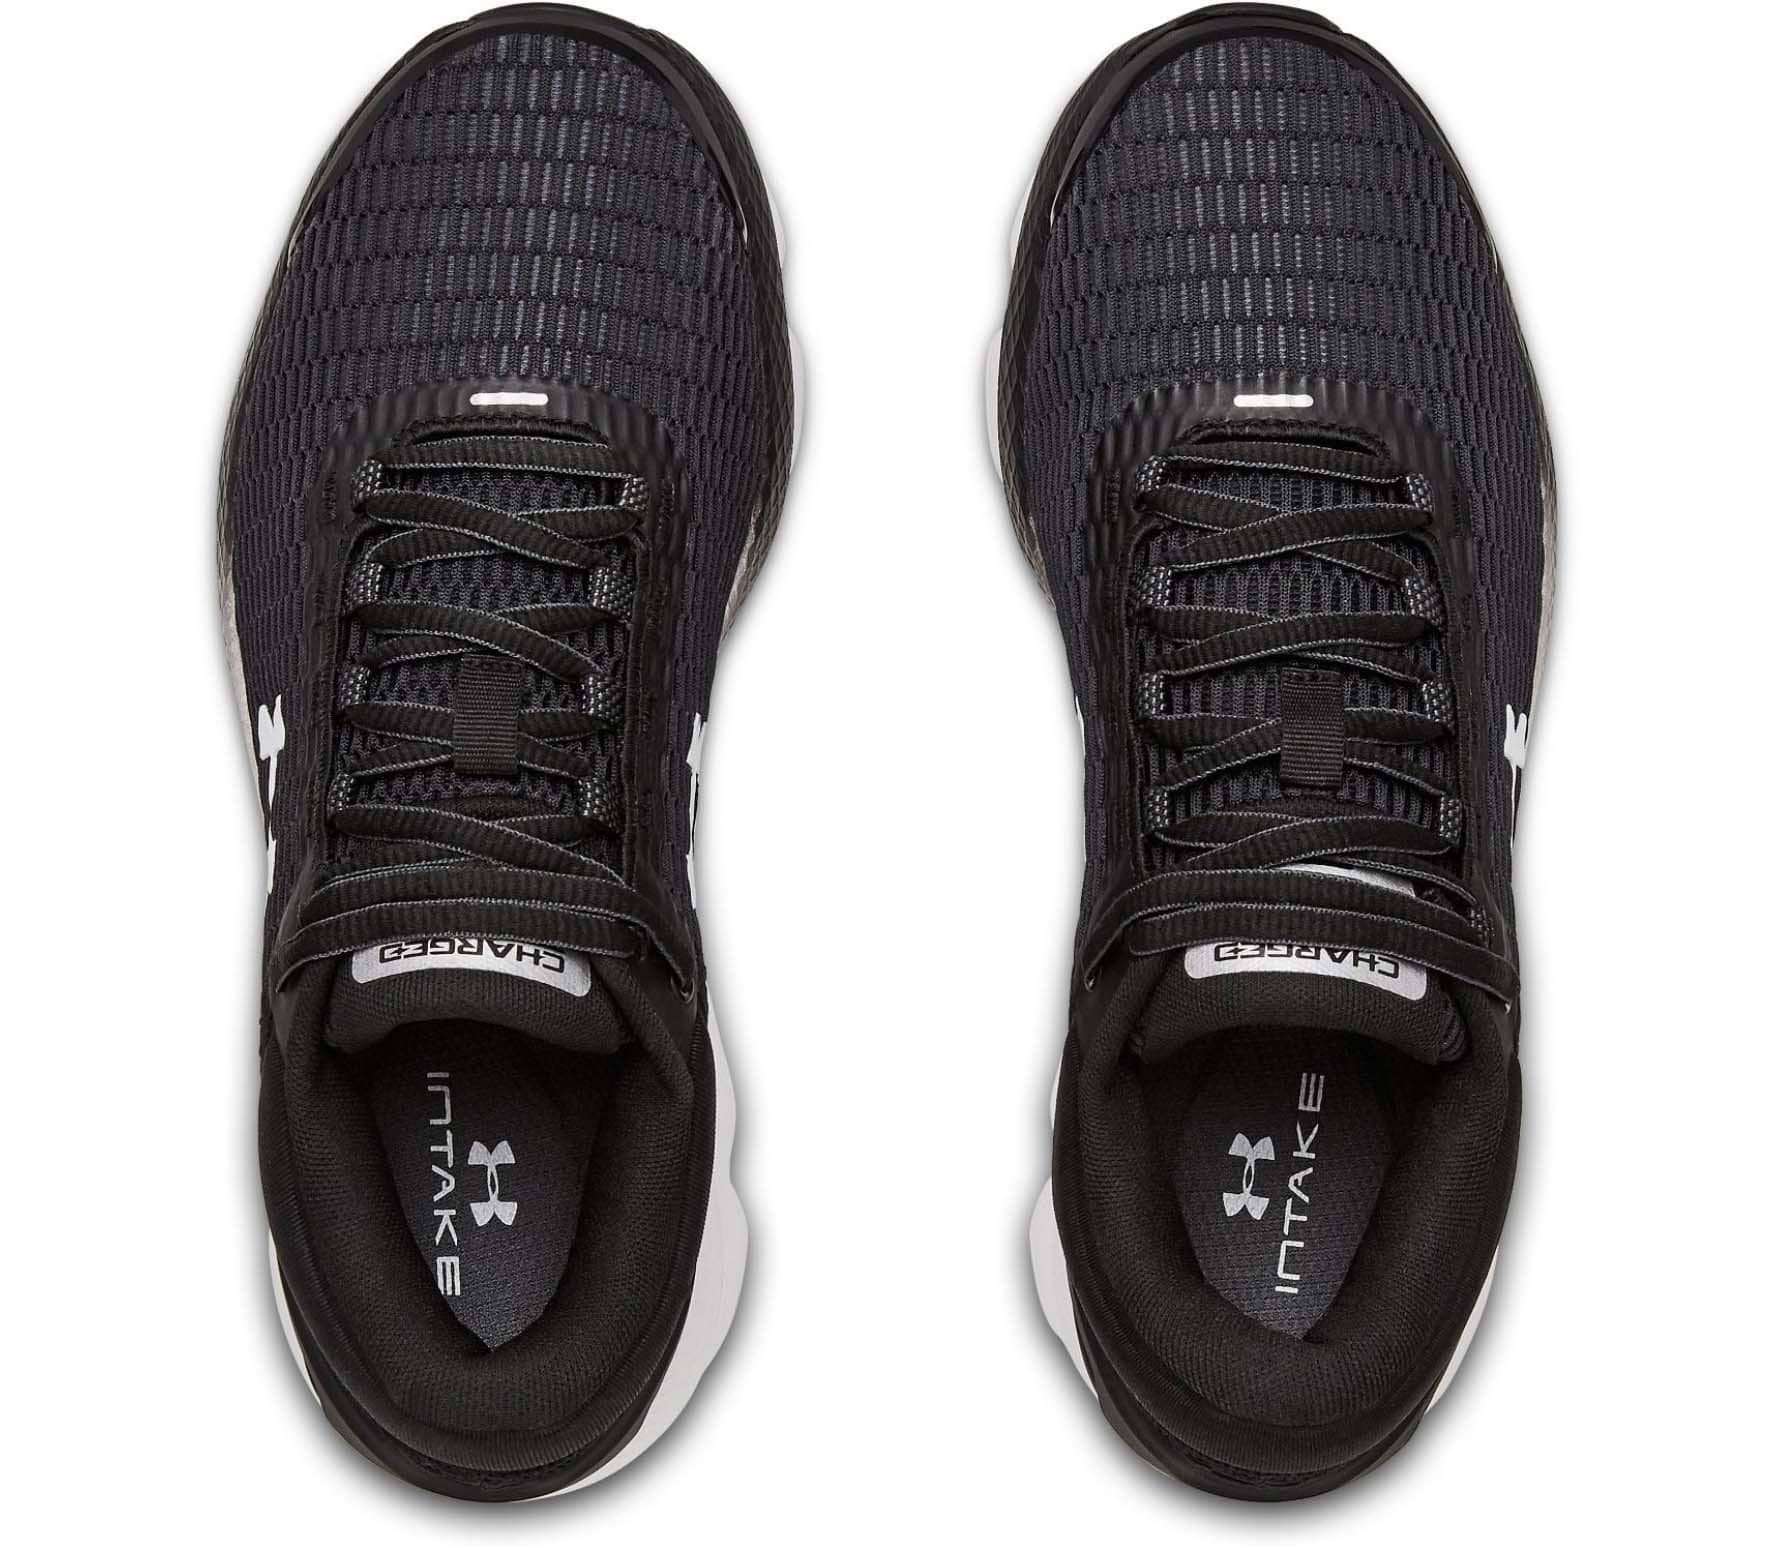 Under Armour Charged Intake 3 Femmes Chaussures running noir